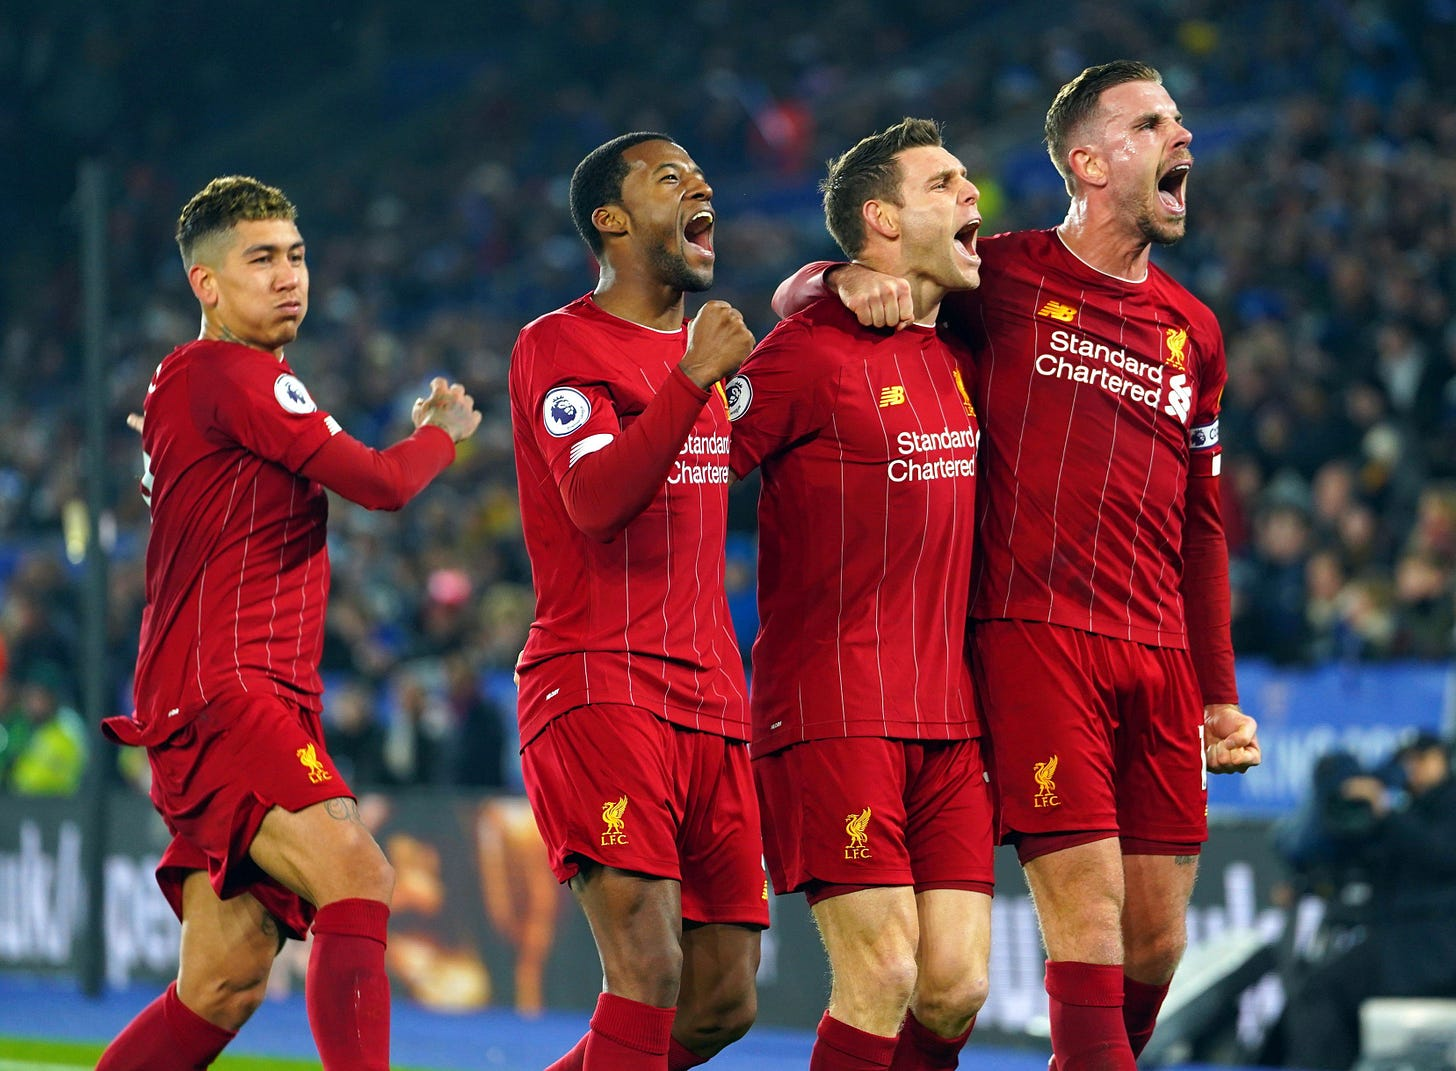 Premier League leaders Liverpool could make 2020 their greatest year yet |  South China Morning Post